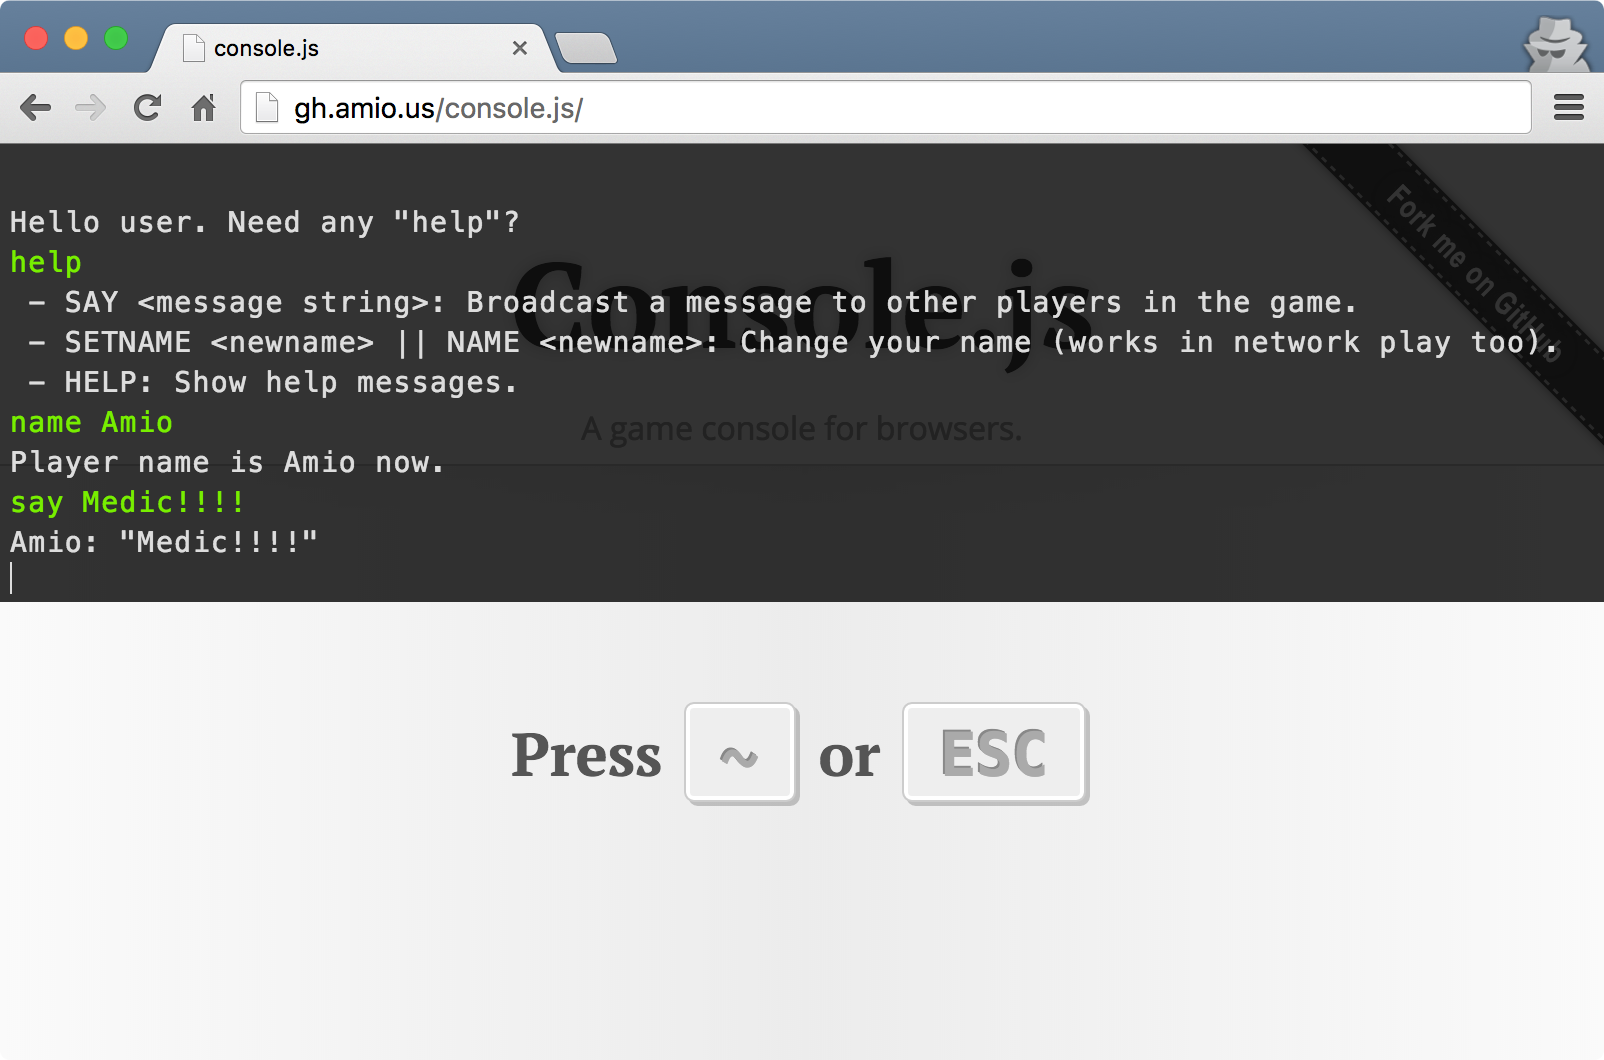 Console.js in browser